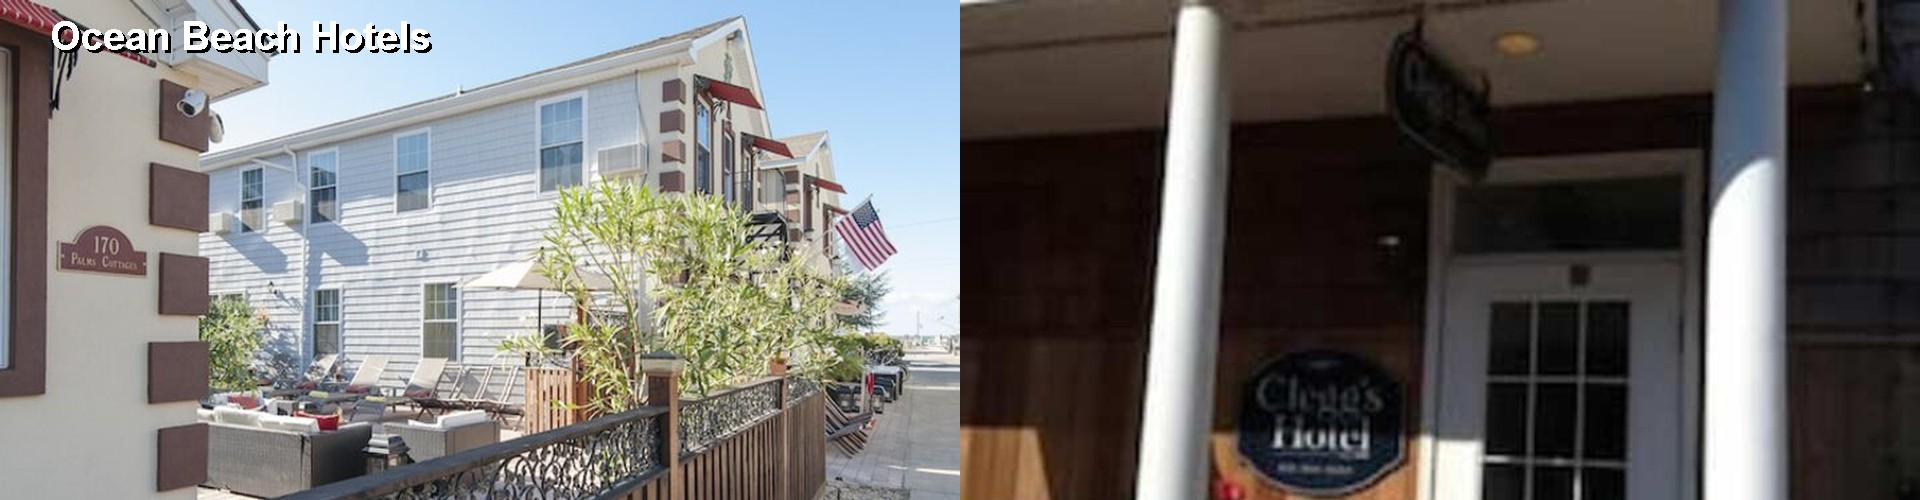 3 Best Hotels near Ocean Beach